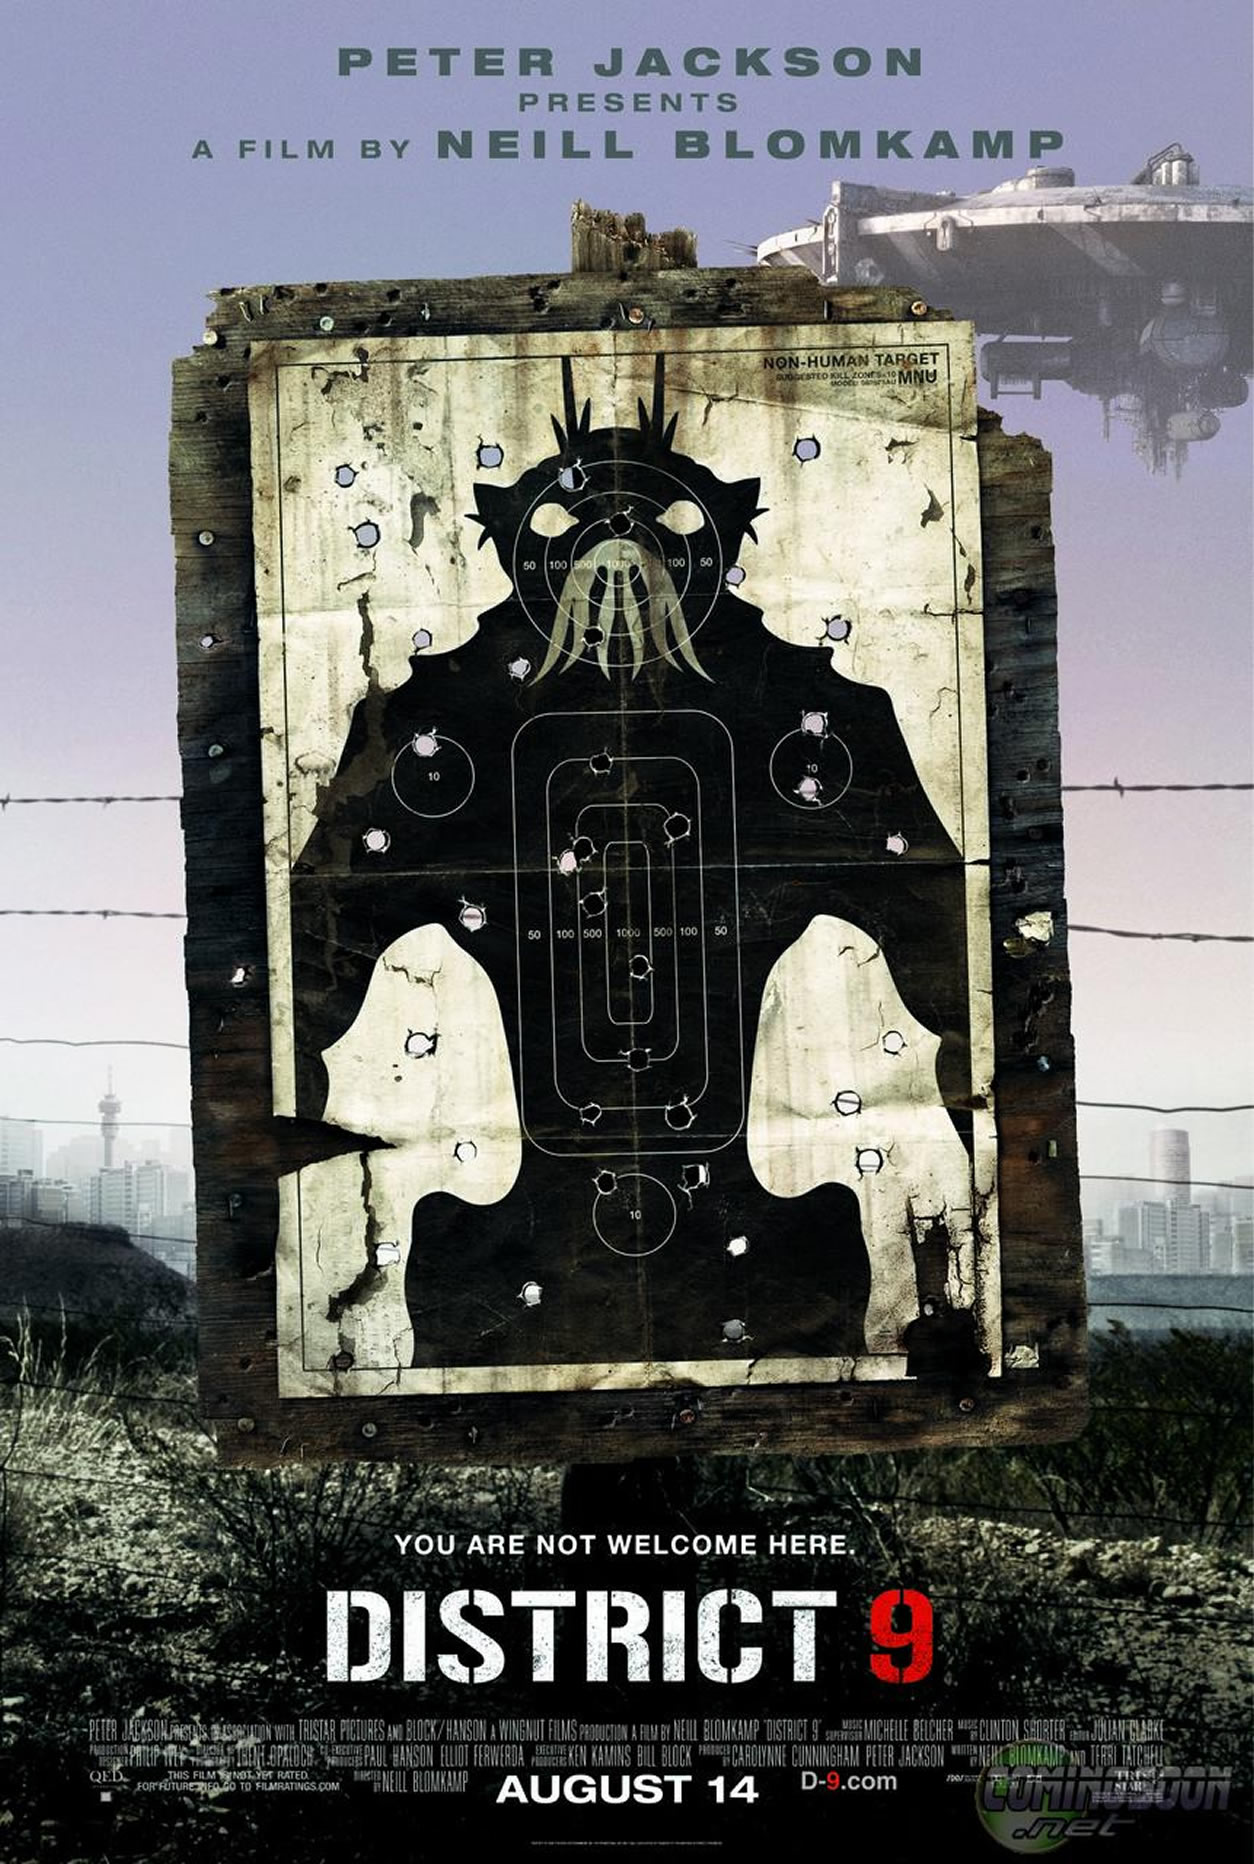 District 9: South Africa and apartheid come to the movies